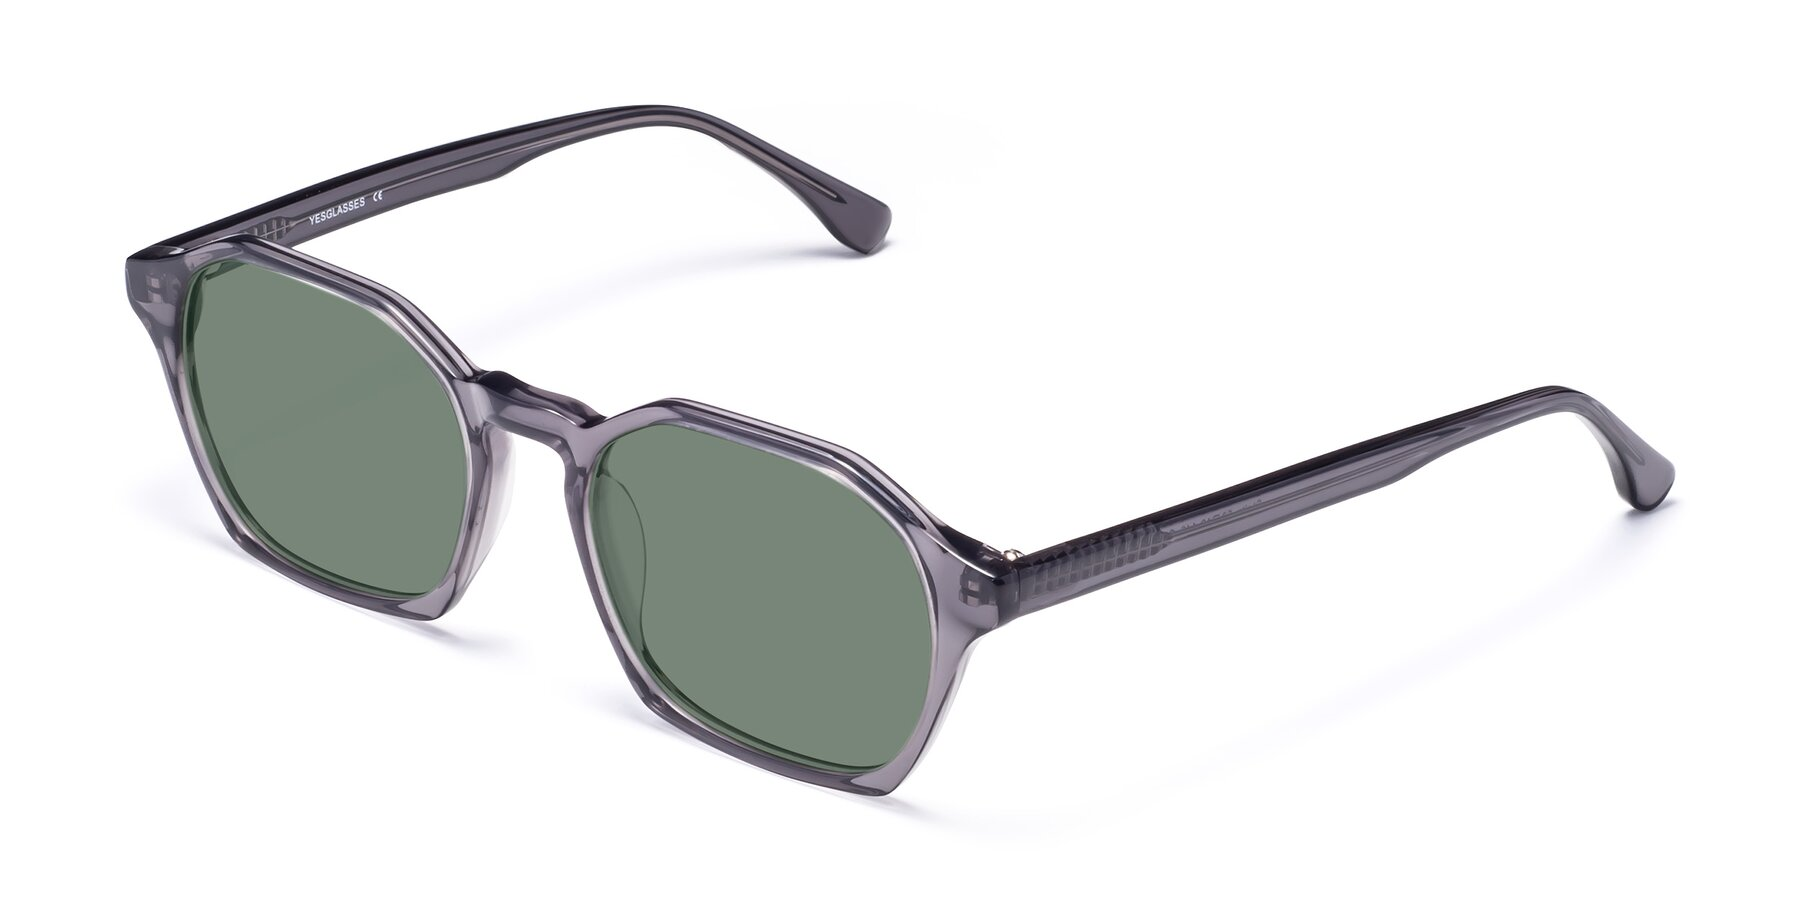 Angle of Stoltz in Translucent Gray with Medium Green Tinted Lenses